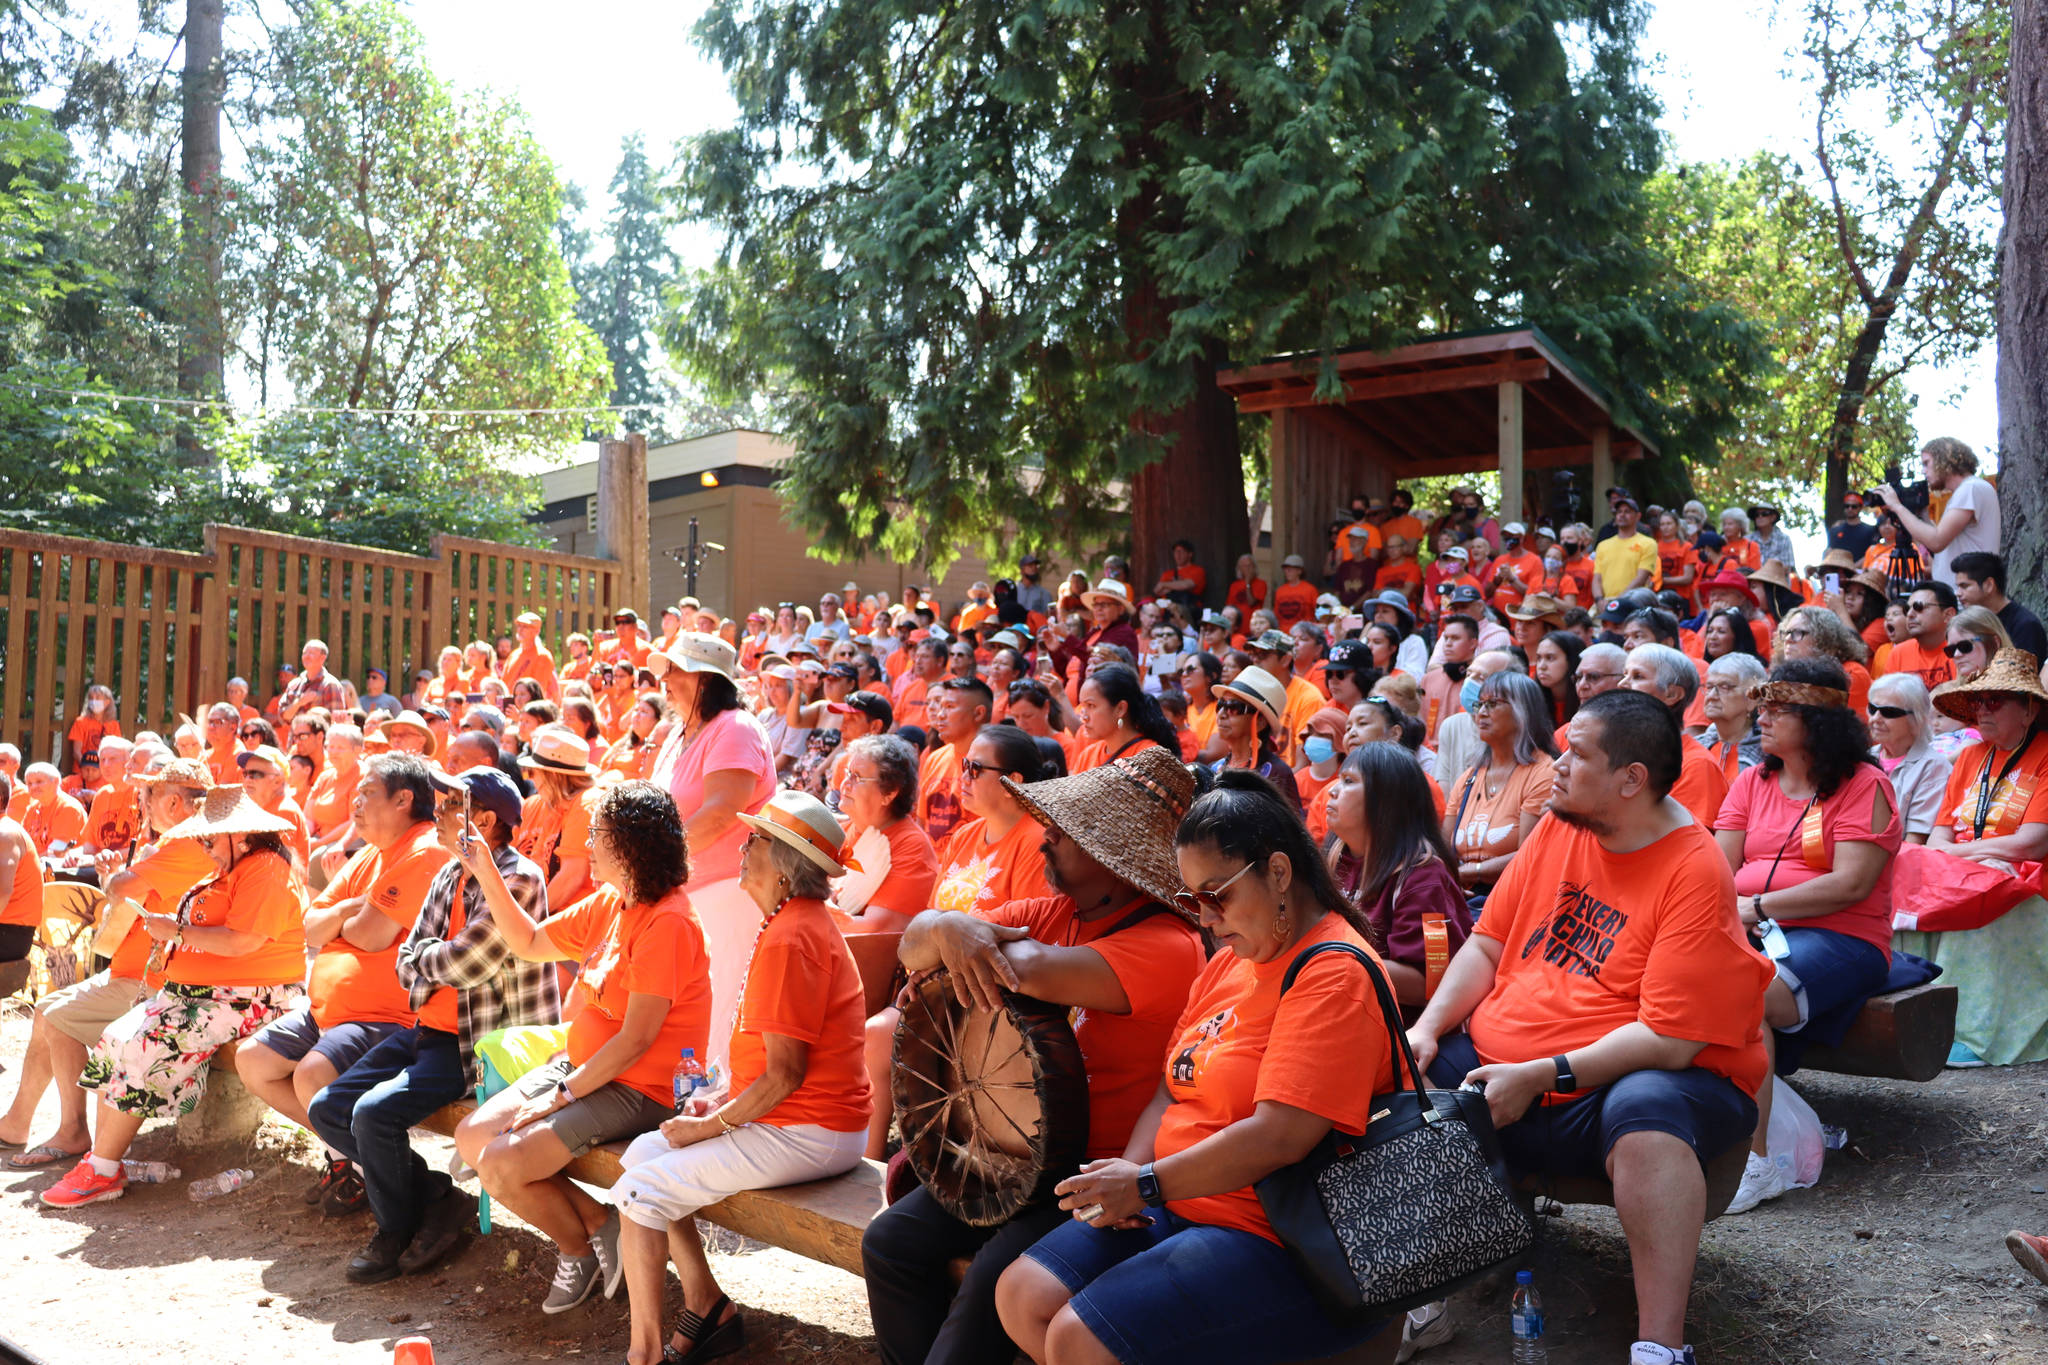 There was standing room only at Waterwheel Park as speakers shared their words with the crowd. (Cole Schisler photo)